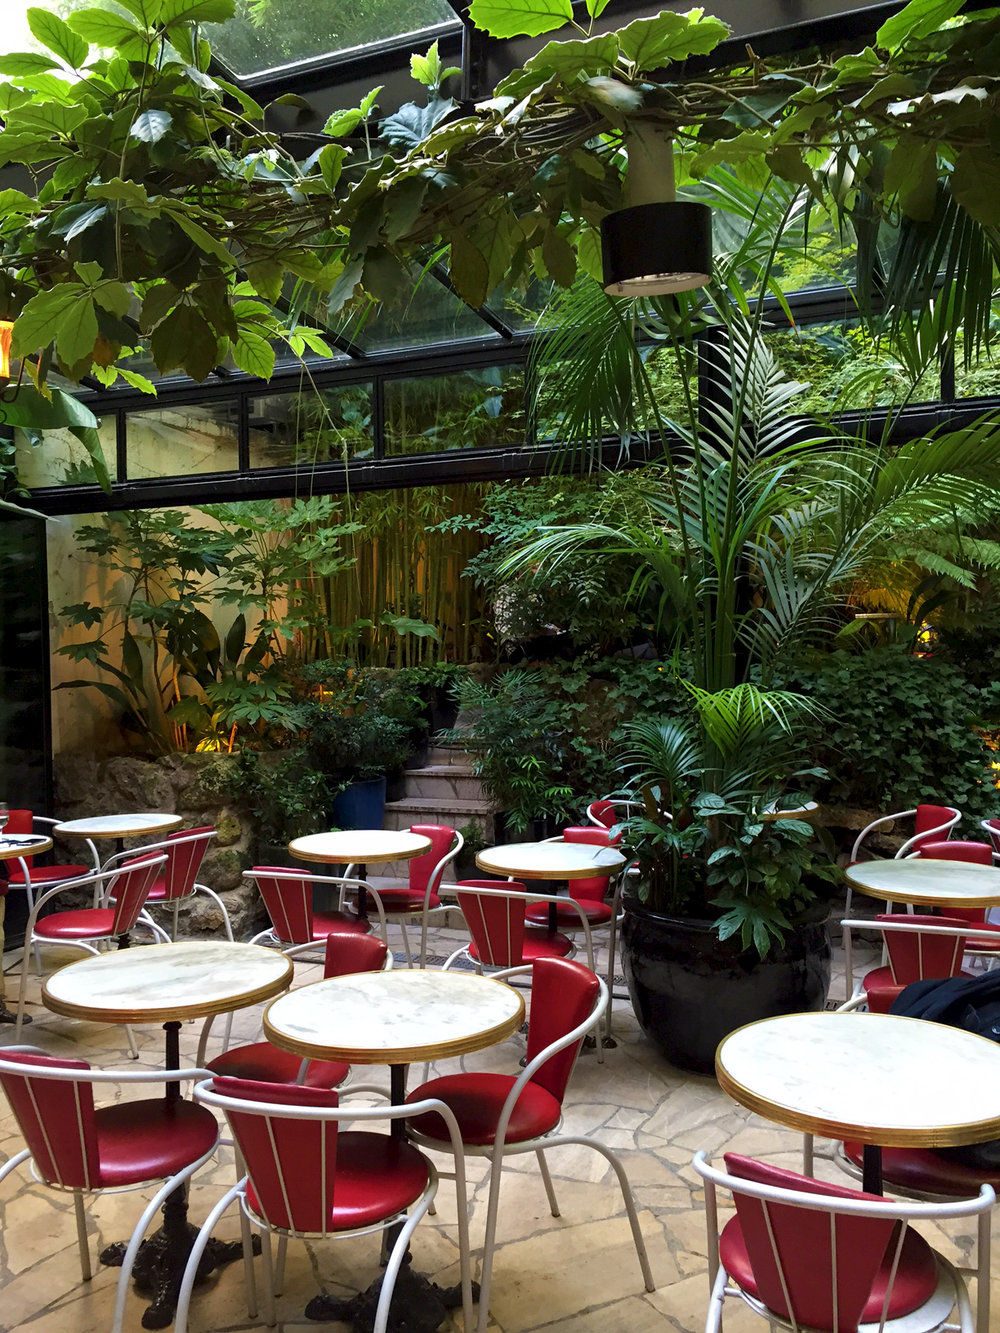 A luxurious garden, filled with lush greenery, under a glass roof. Very popular for brunch. Peaceful in the early evening for a before dinner drink.